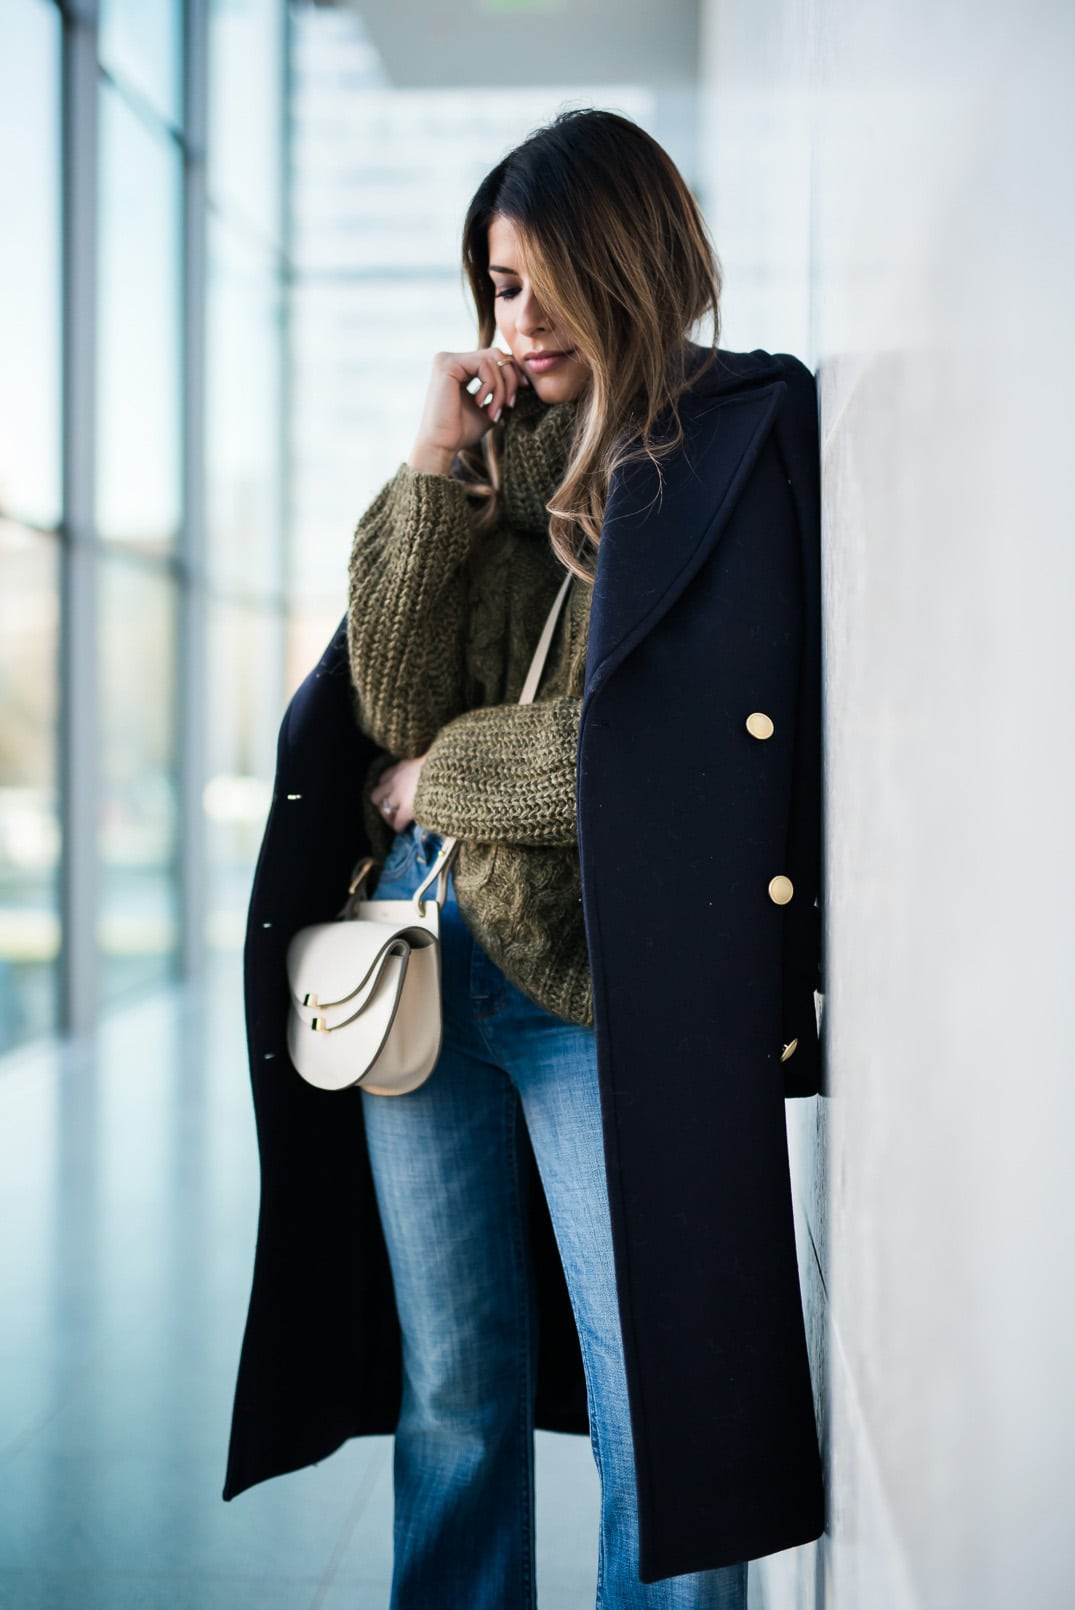 Pam Hetlinger, The Girl From Panama wearing a Khaki sweater, h&m navy coat, 7 for all mankind ginger jeans, gray booties, and chloe georgia bag.